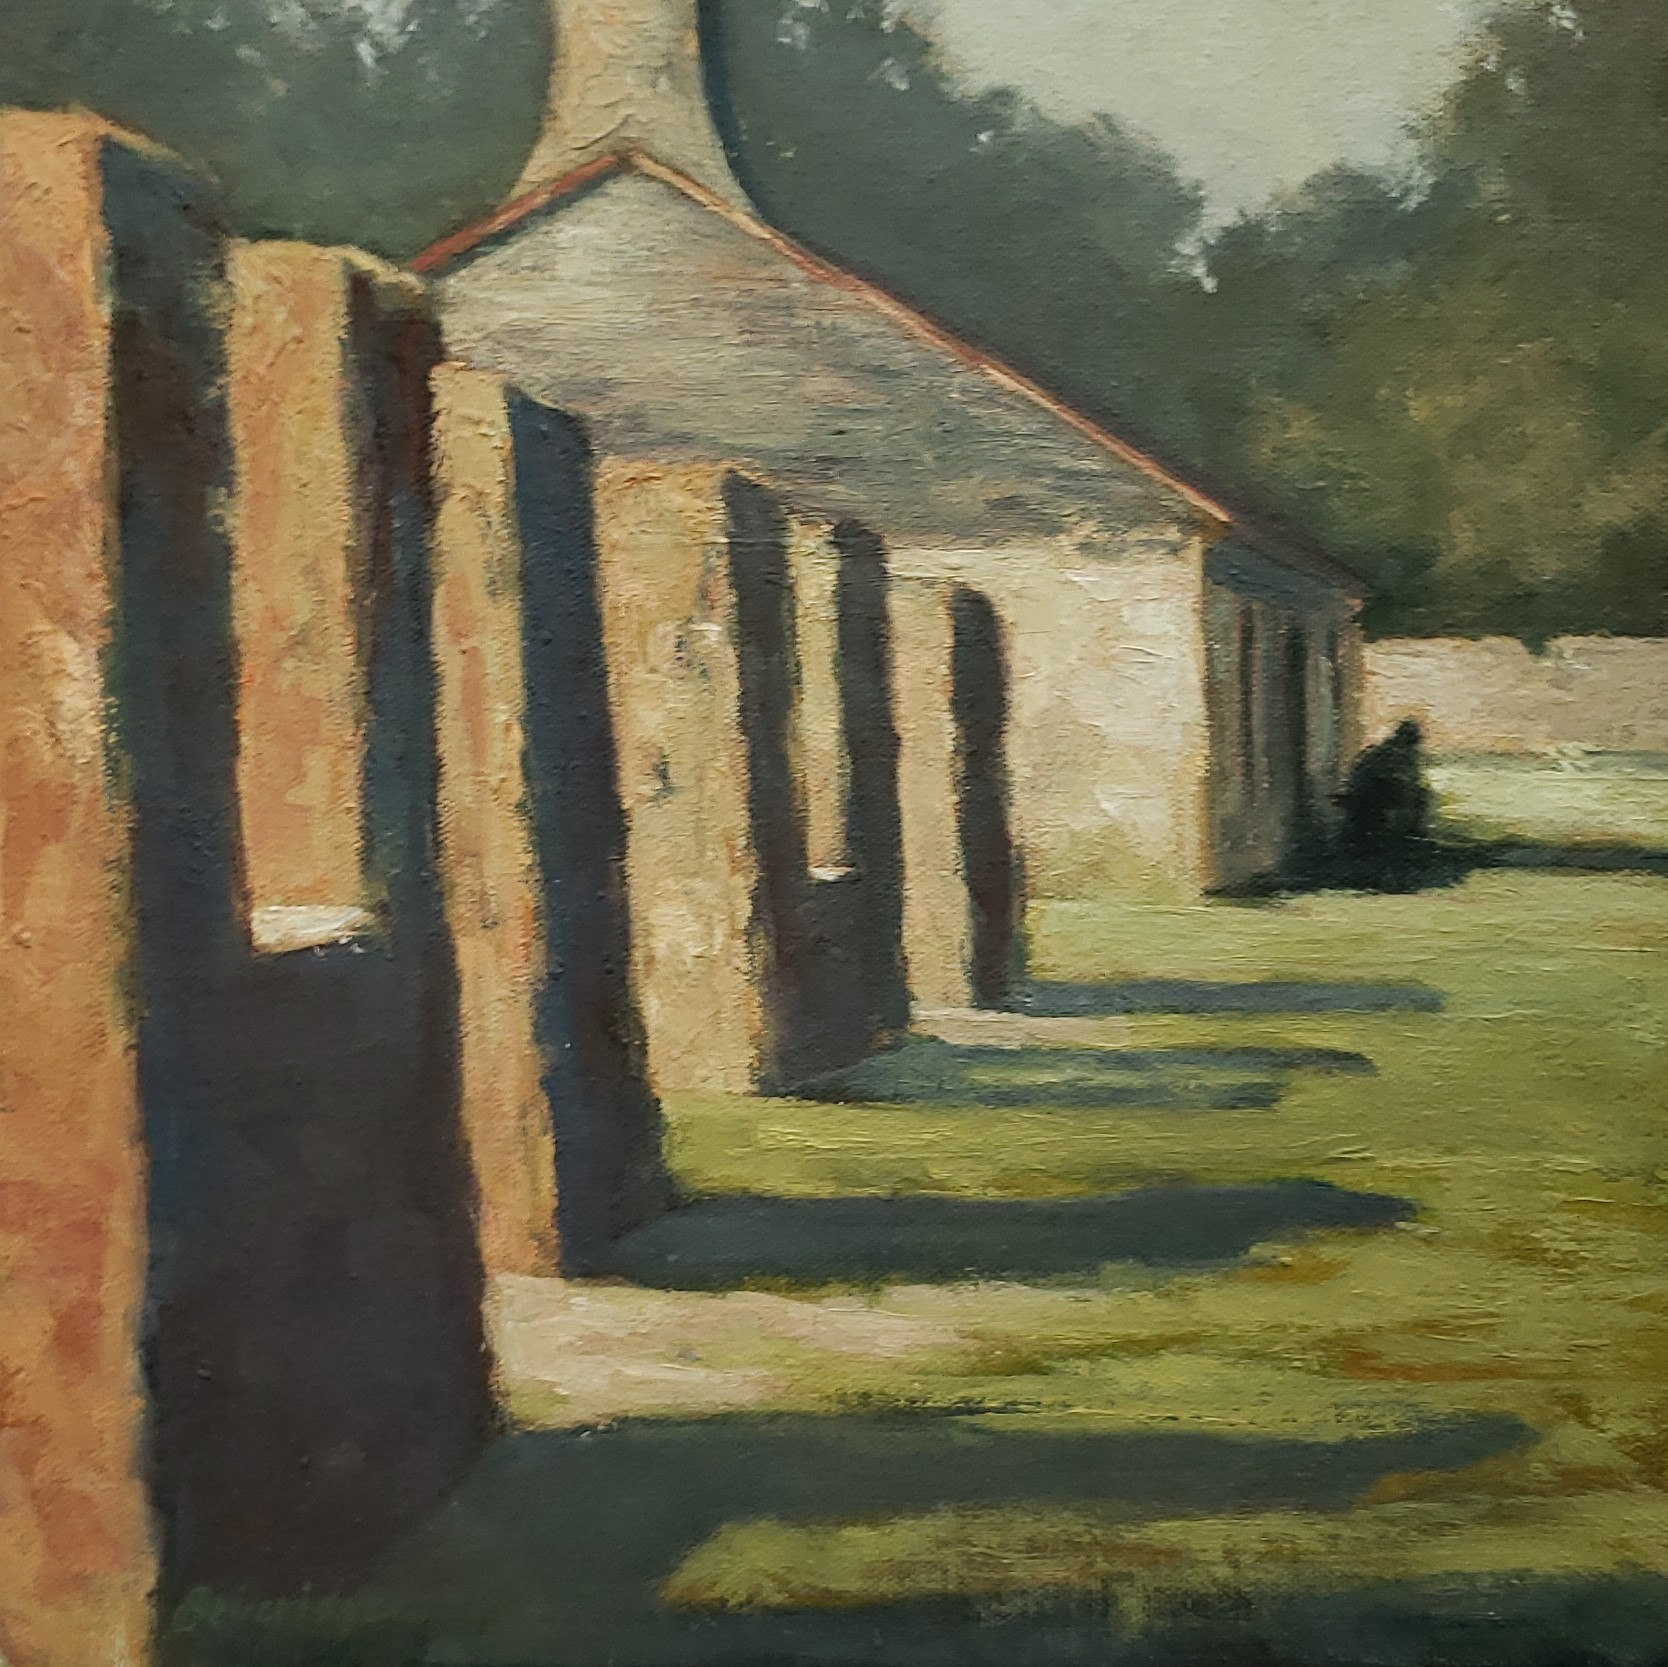 'Shadowed History', oil on panel by Gail Beveridge ($500) ⎼ 'In this time of social unrest, it's important to have a balanced historical narrative and the Kingsley Plantation on Fort George Island tries to do this by addressing life on a cotton plantation from the perspective of both the slave owner and his slaves. This painting was created from a plein air study done on site at that plantation. Early on that morning, the remnants of the slave quarters cast long shadows and a visitor sitting in front of one of the cabins presented a sobering image and the reminder of the cruel bondage that Black people endured on these plantations.'